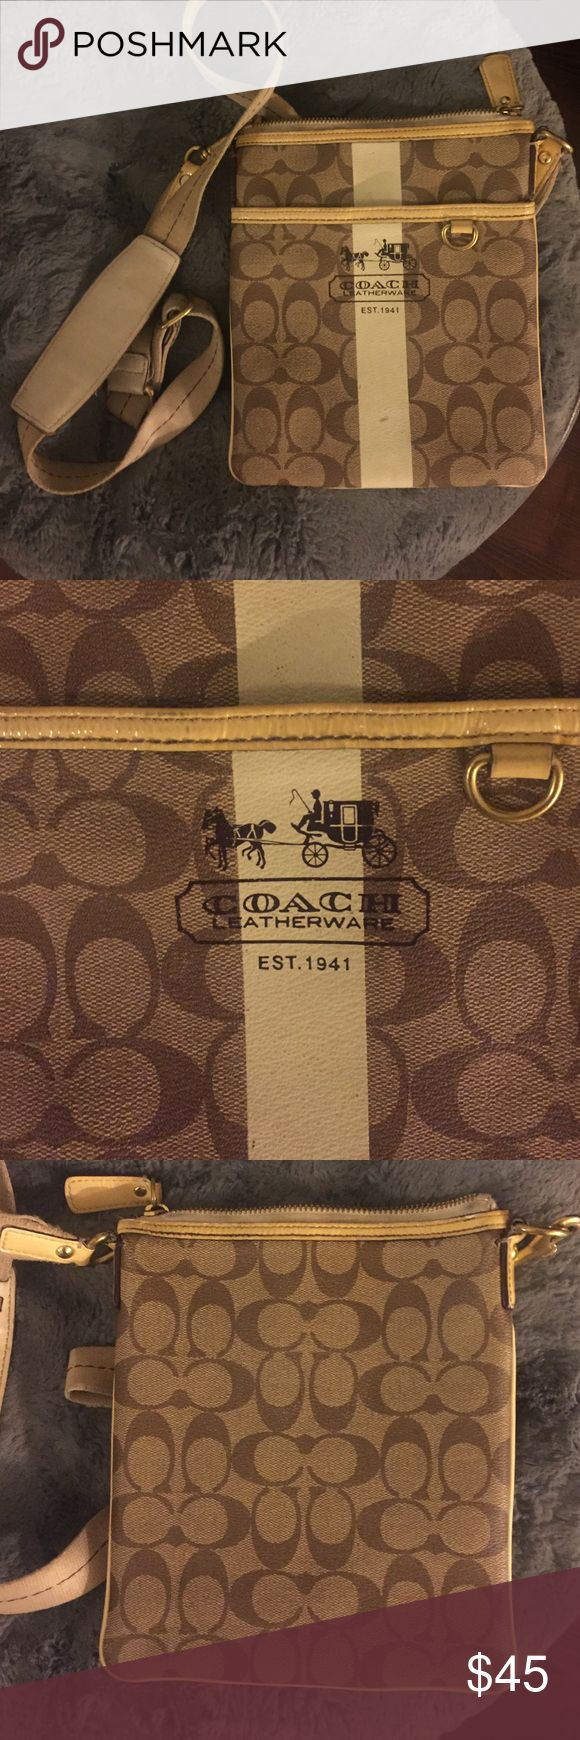 Brown and cream COACH swingpack In good condition brown/cream COACH swingpack. Has one dirty spot but should be able to come off at the dry cleaners. Coach Bags Crossbody Bags